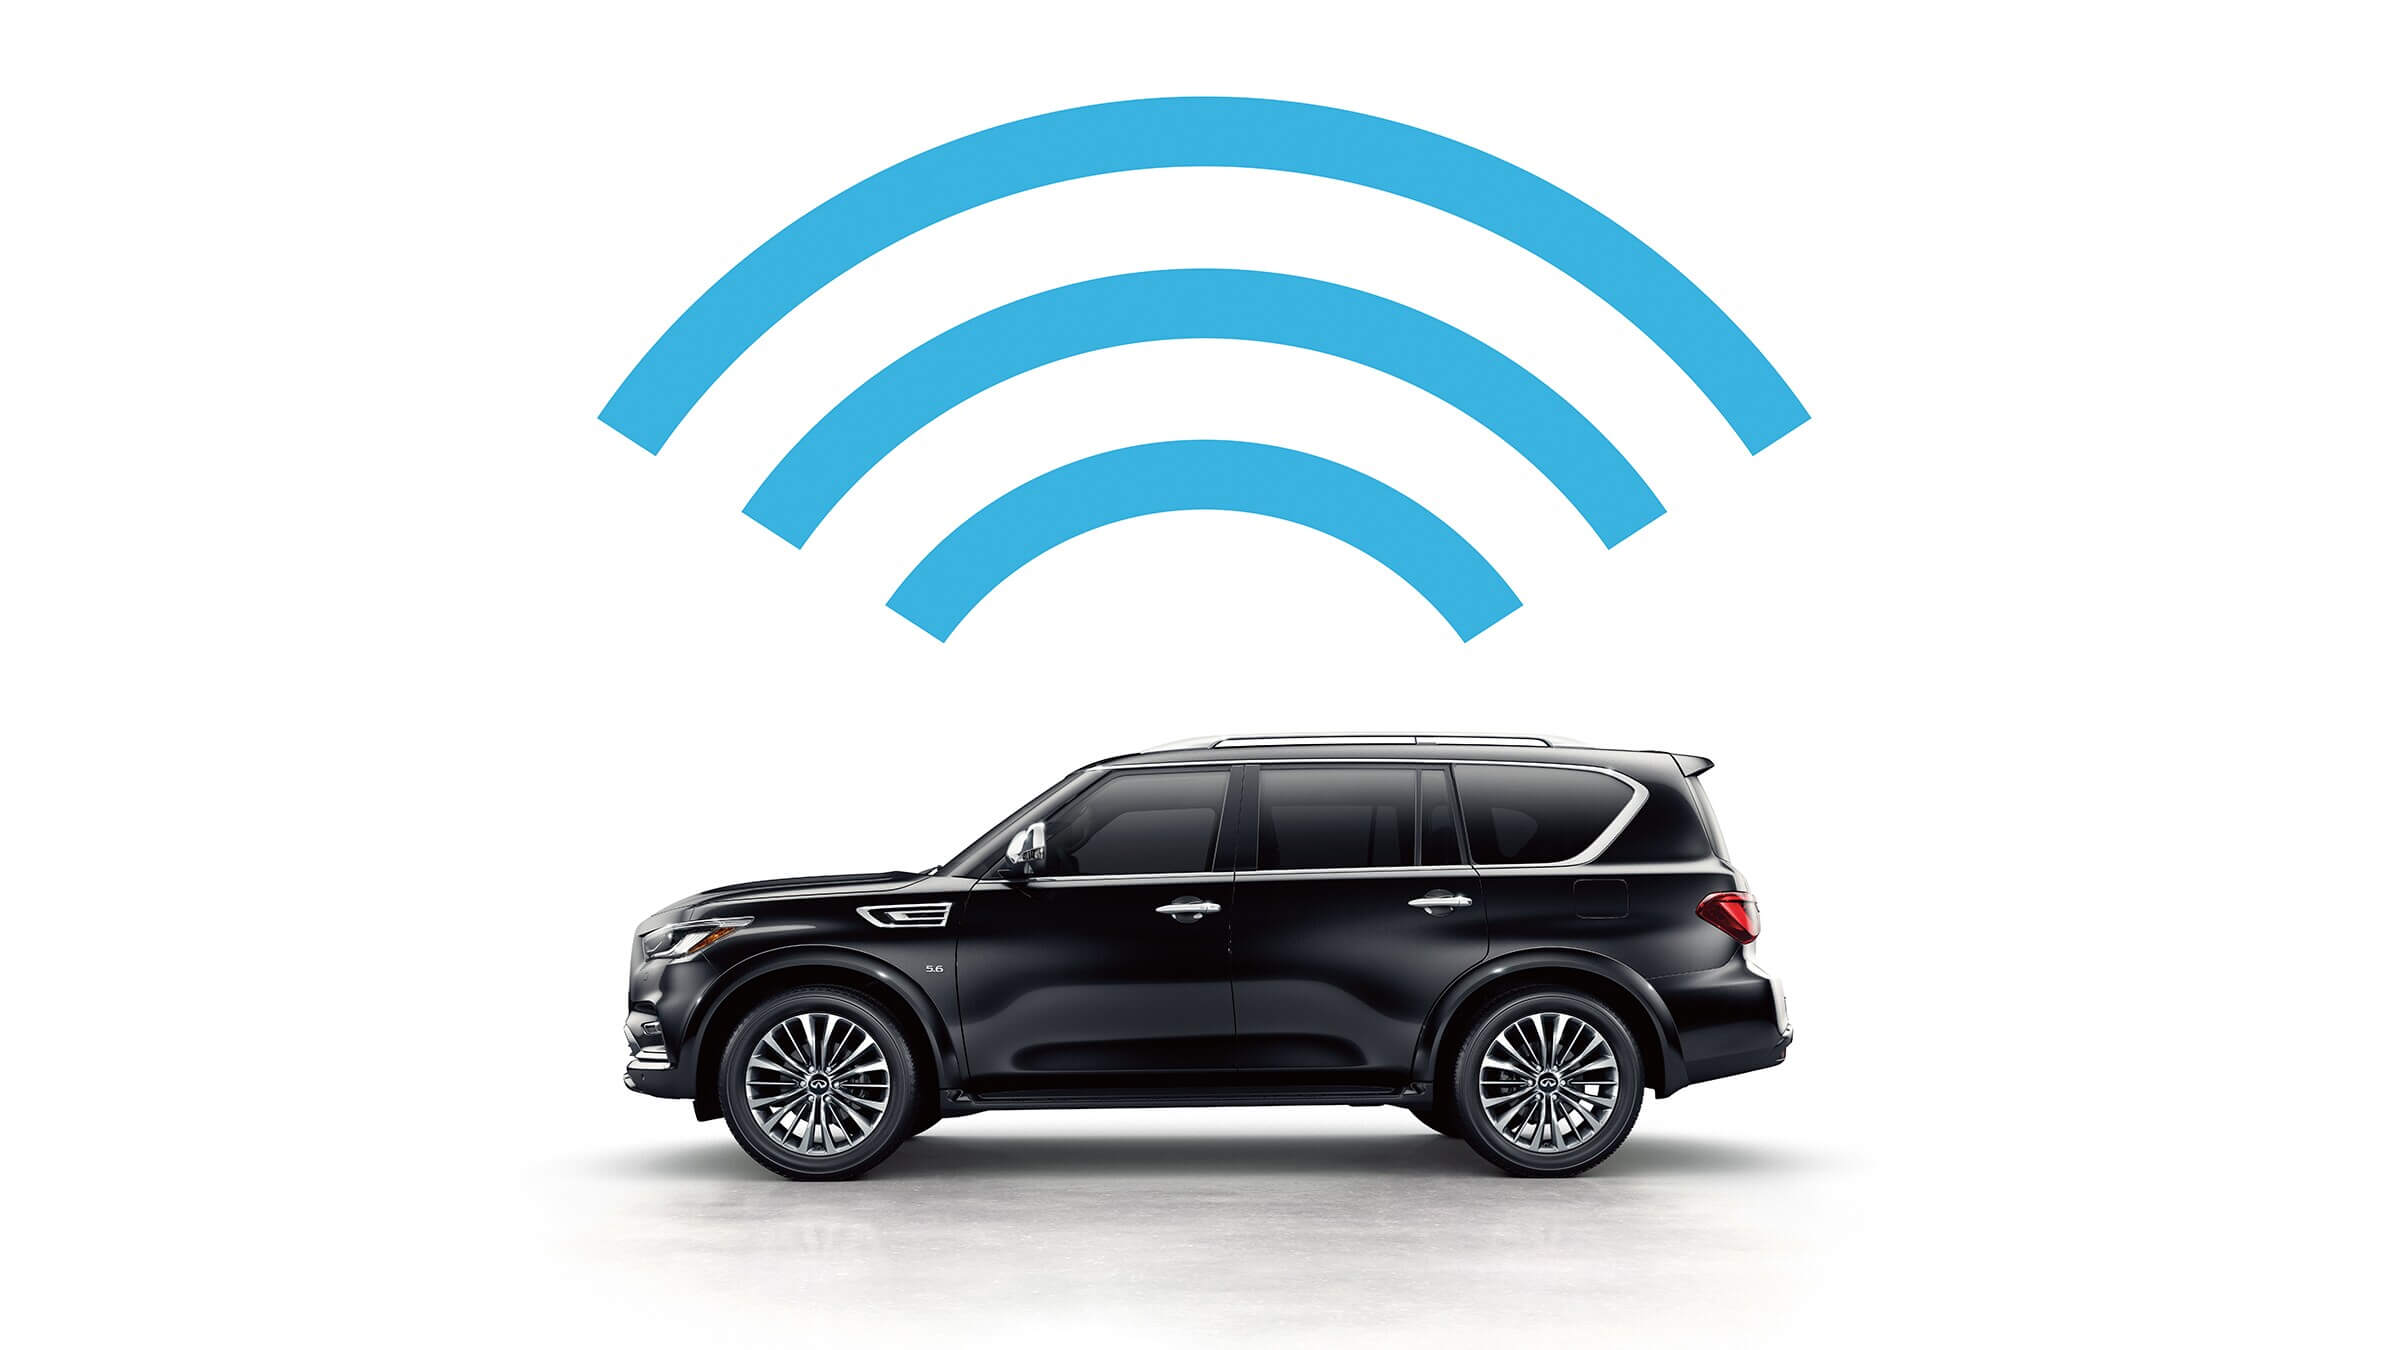 2021 Infiniti Qx80 with Infiniti InTouch